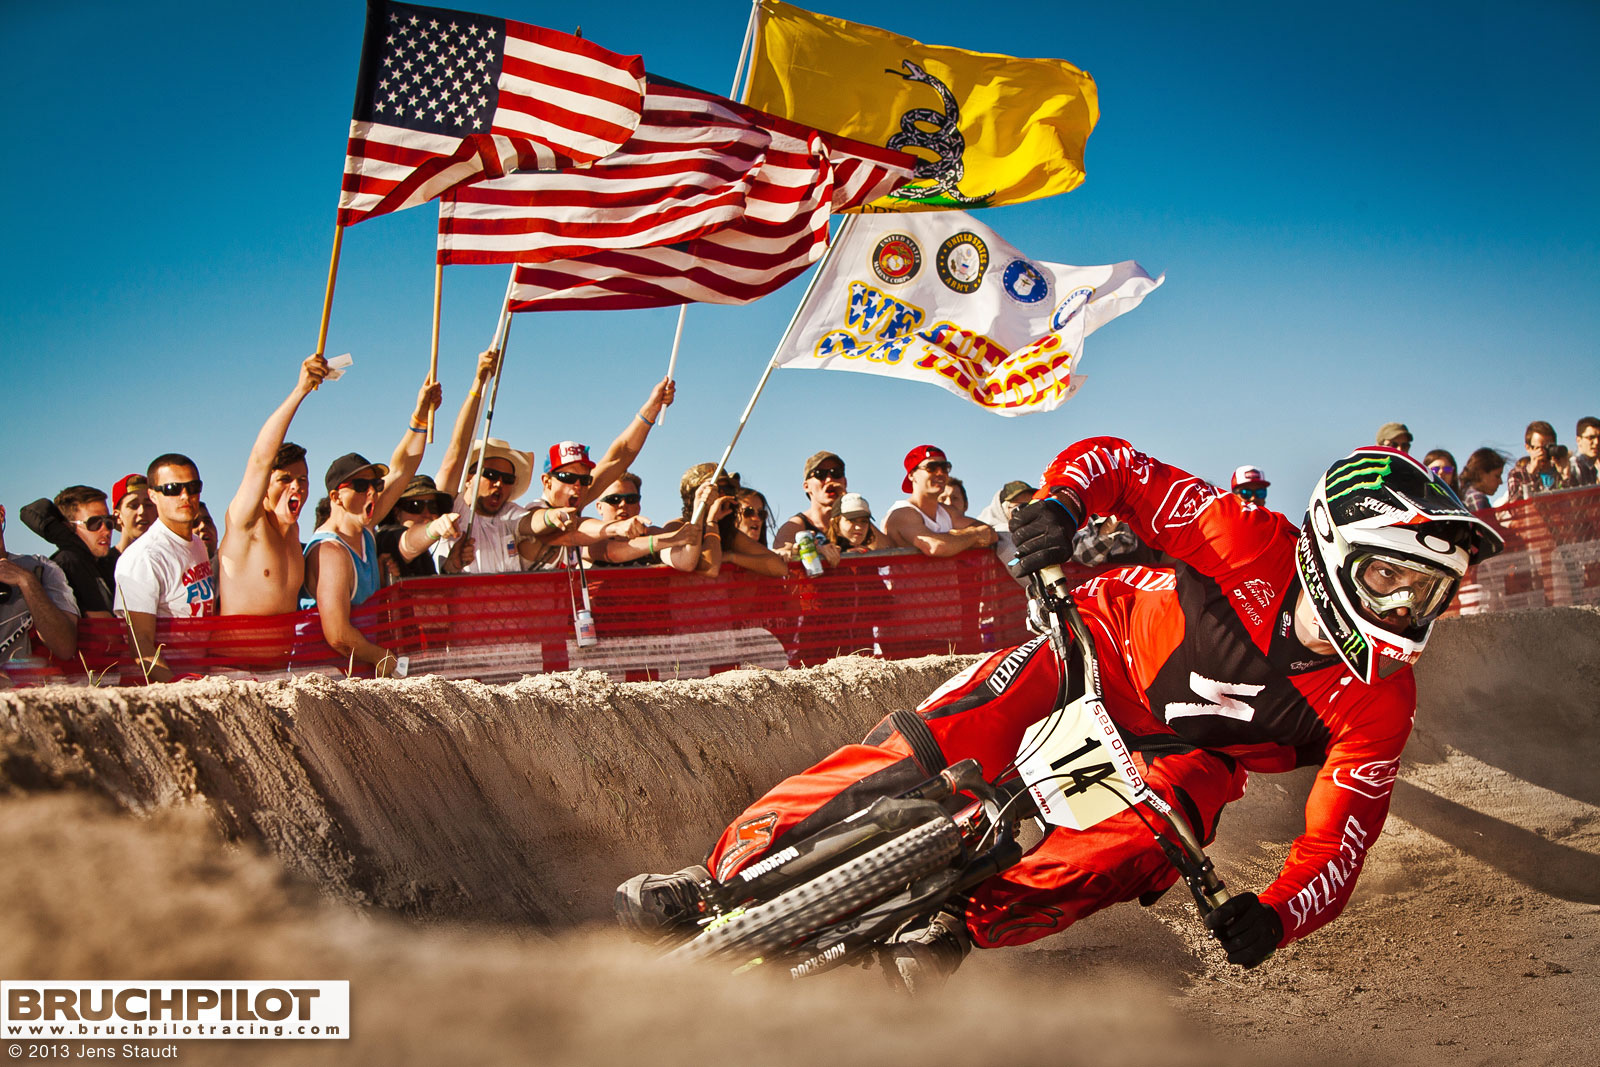 SeaOtter Dual is on of THE events of the year to shoot photos. Light is amazing and the world best athletes compete.